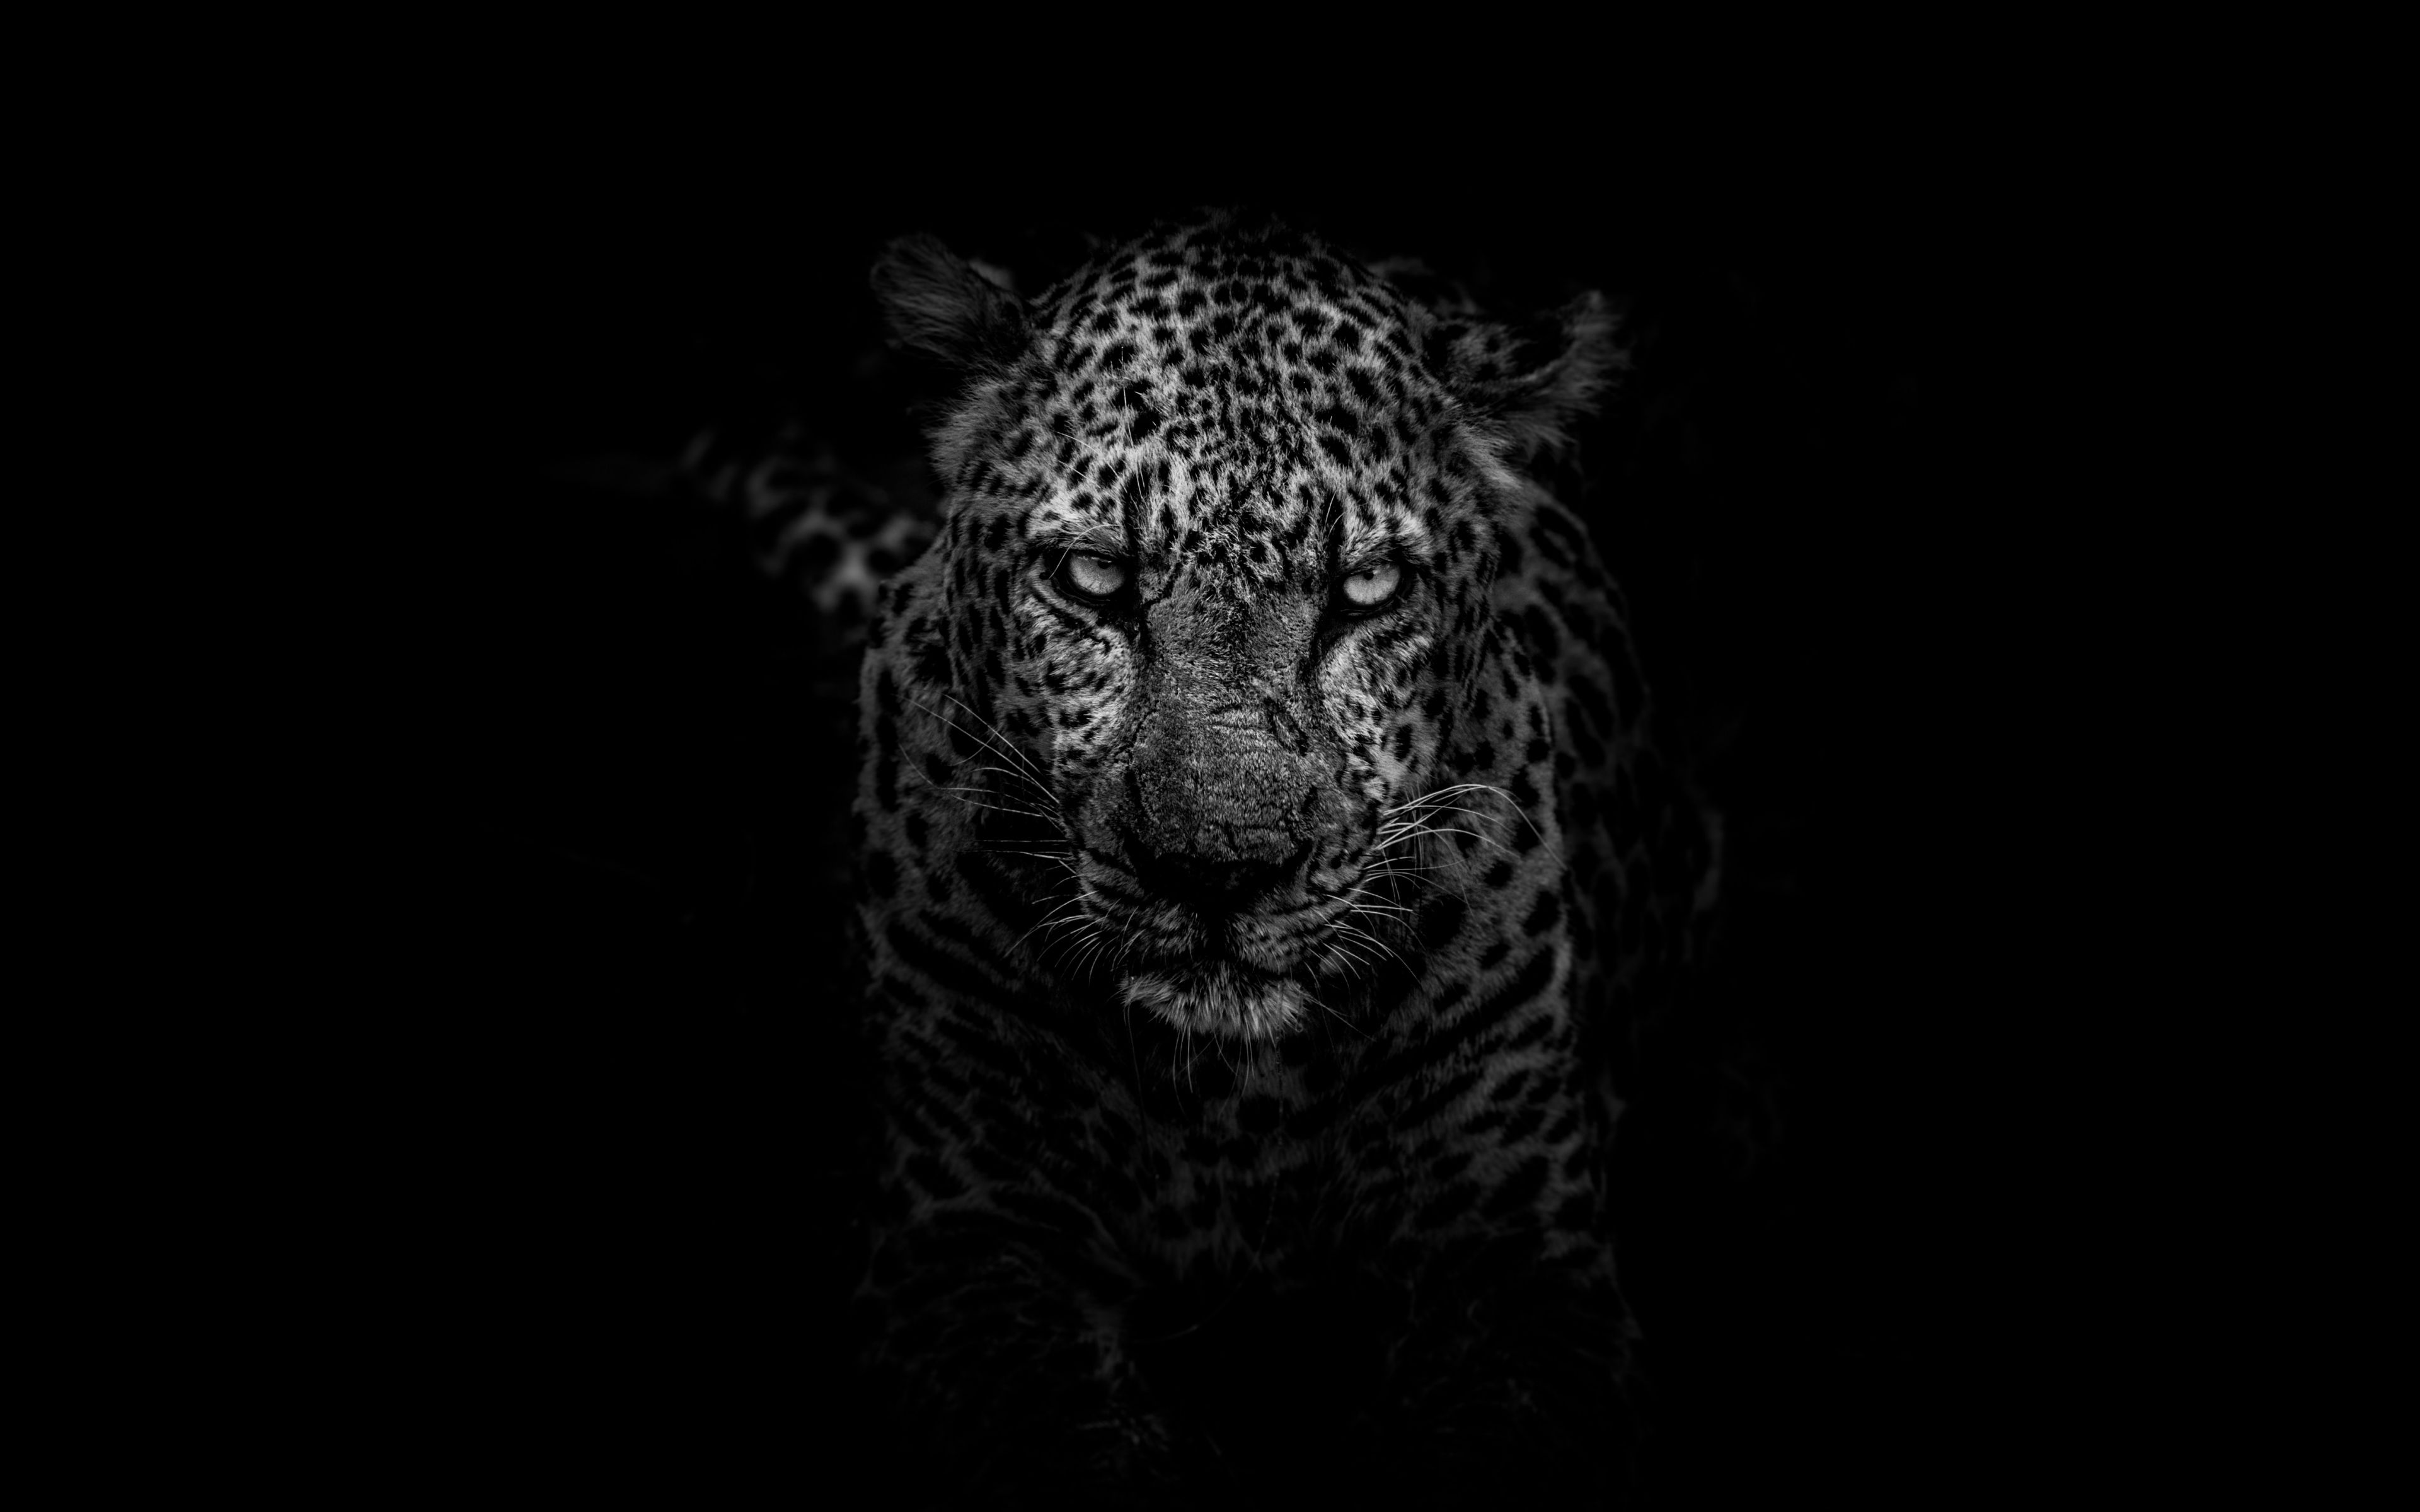 High Definition Quality Desktop Wallpapers For Any Screen Size And Resolutions 1920 1080 Cheetah Wallpaper Jaguar Wallpaper Animal Wallpaper